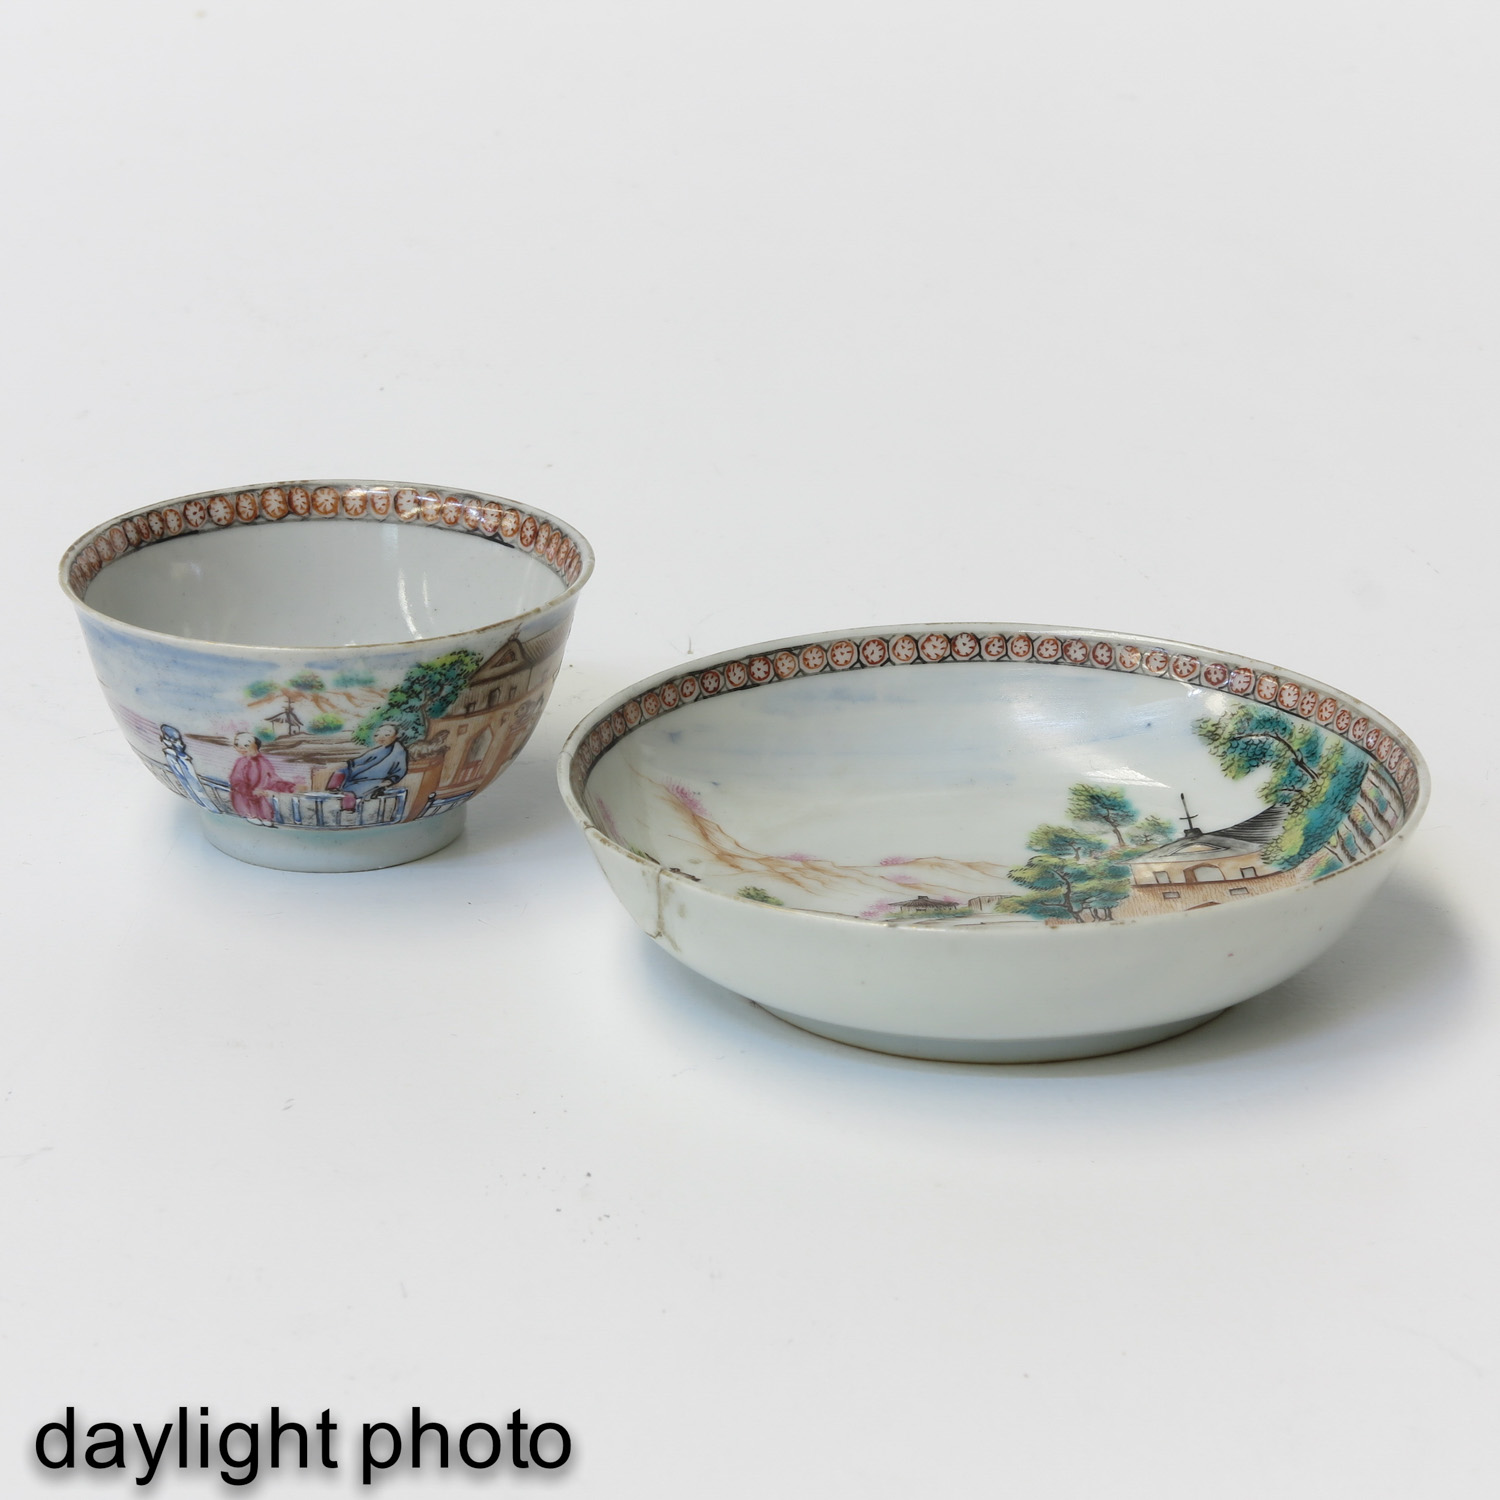 A Series of 3 Cups and Saucers - Image 9 of 10